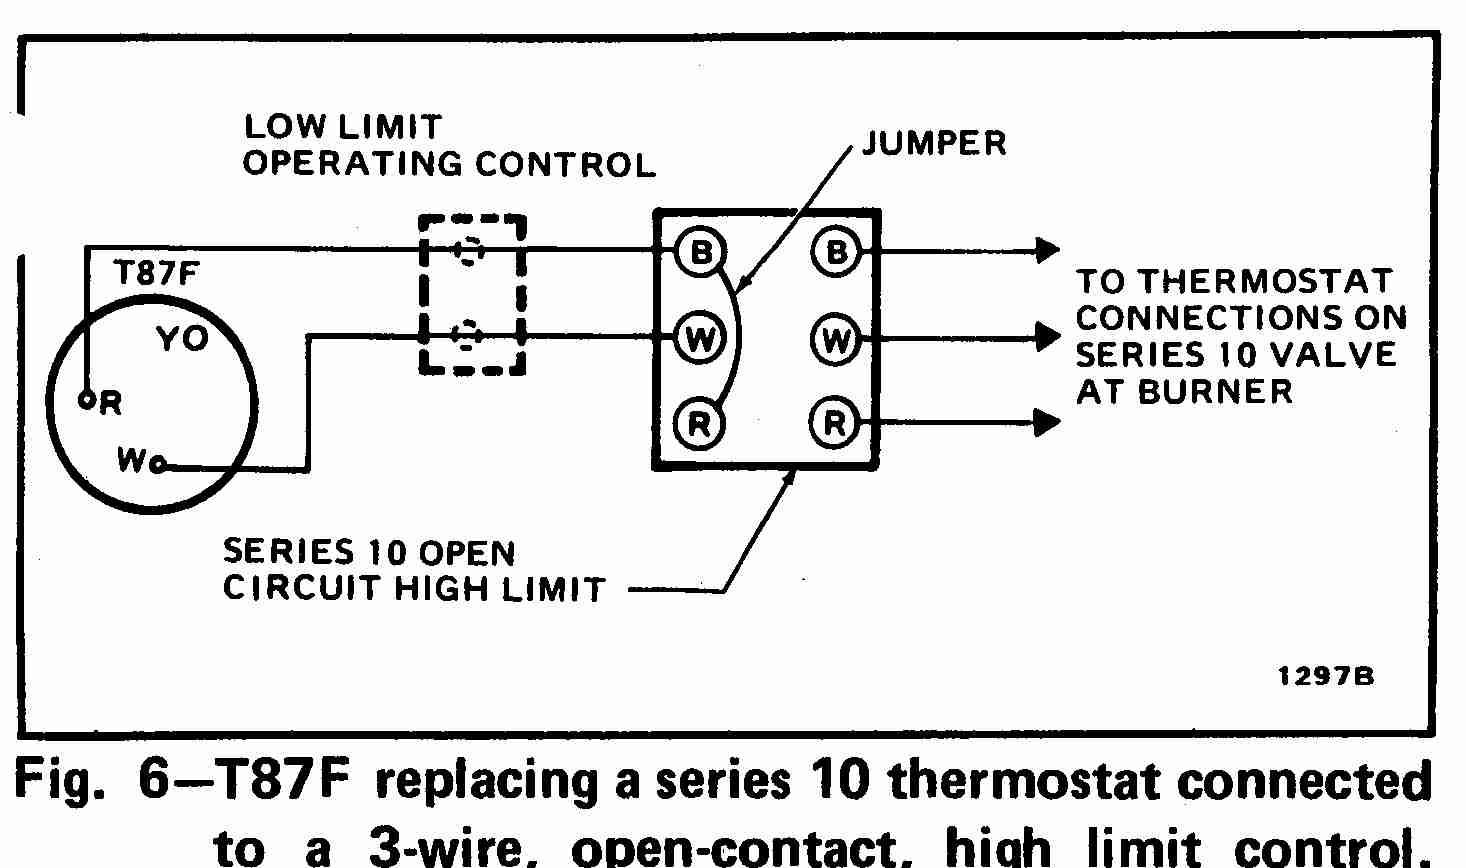 TT_T87F_0002_3WHL_DJF room thermostat wiring diagrams for hvac systems honeywell oil furnace wiring diagrams at reclaimingppi.co